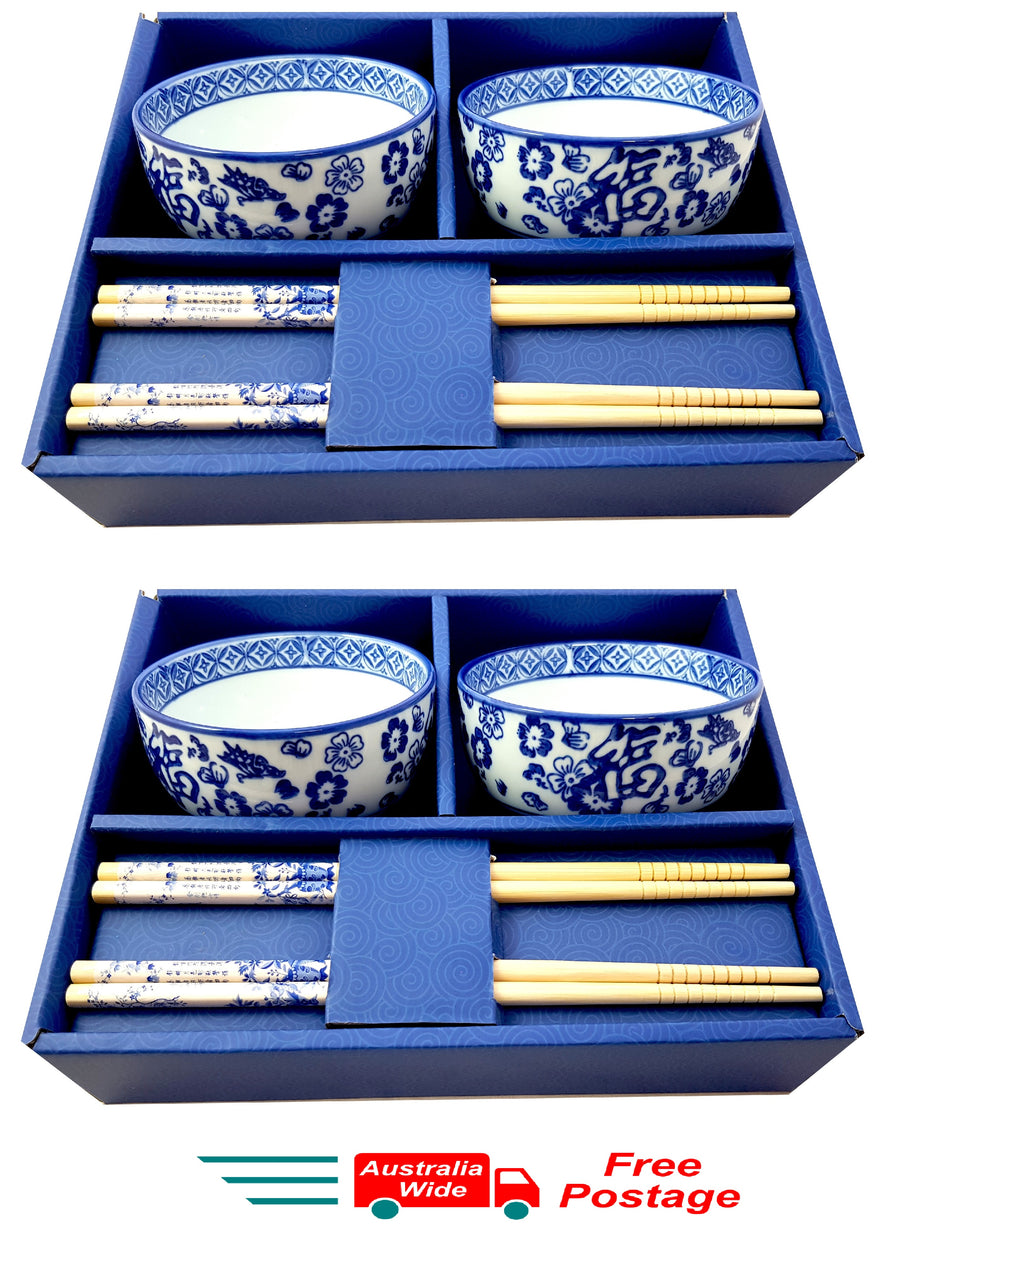 4 x CERAMIC CHINESE JAPANESE RICE SUSHI SASHIMI BOWLS WITH CHOPSTICKS HW317